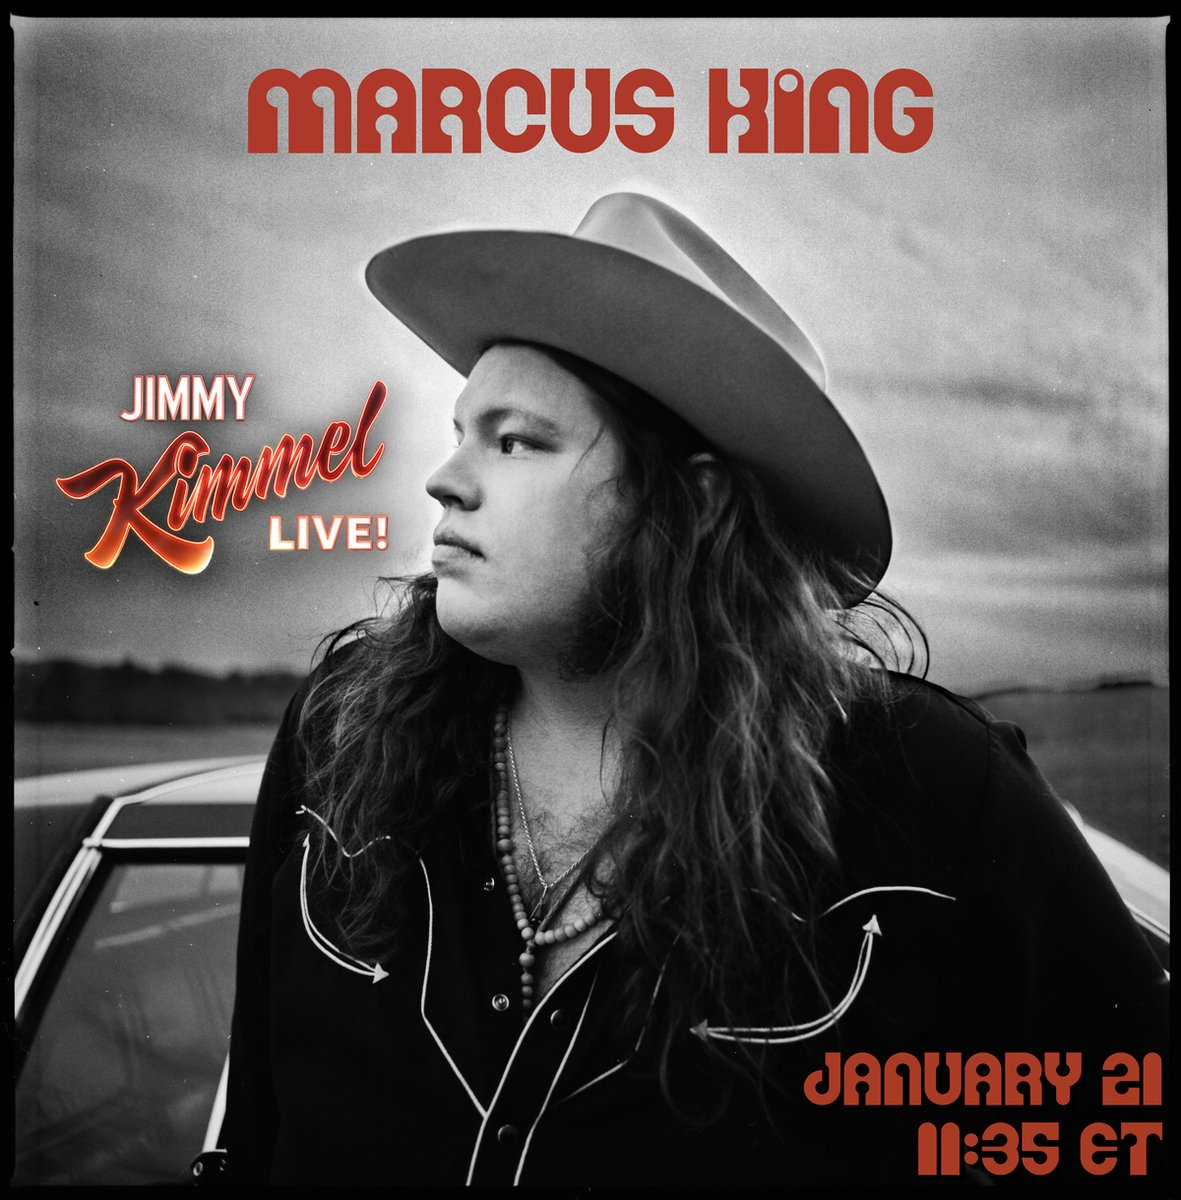 TUNE IN TONIGHT for @realmarcusking1 , Jack, and Stephen on @JimmyKimmelLive !! 11:35PM ET.